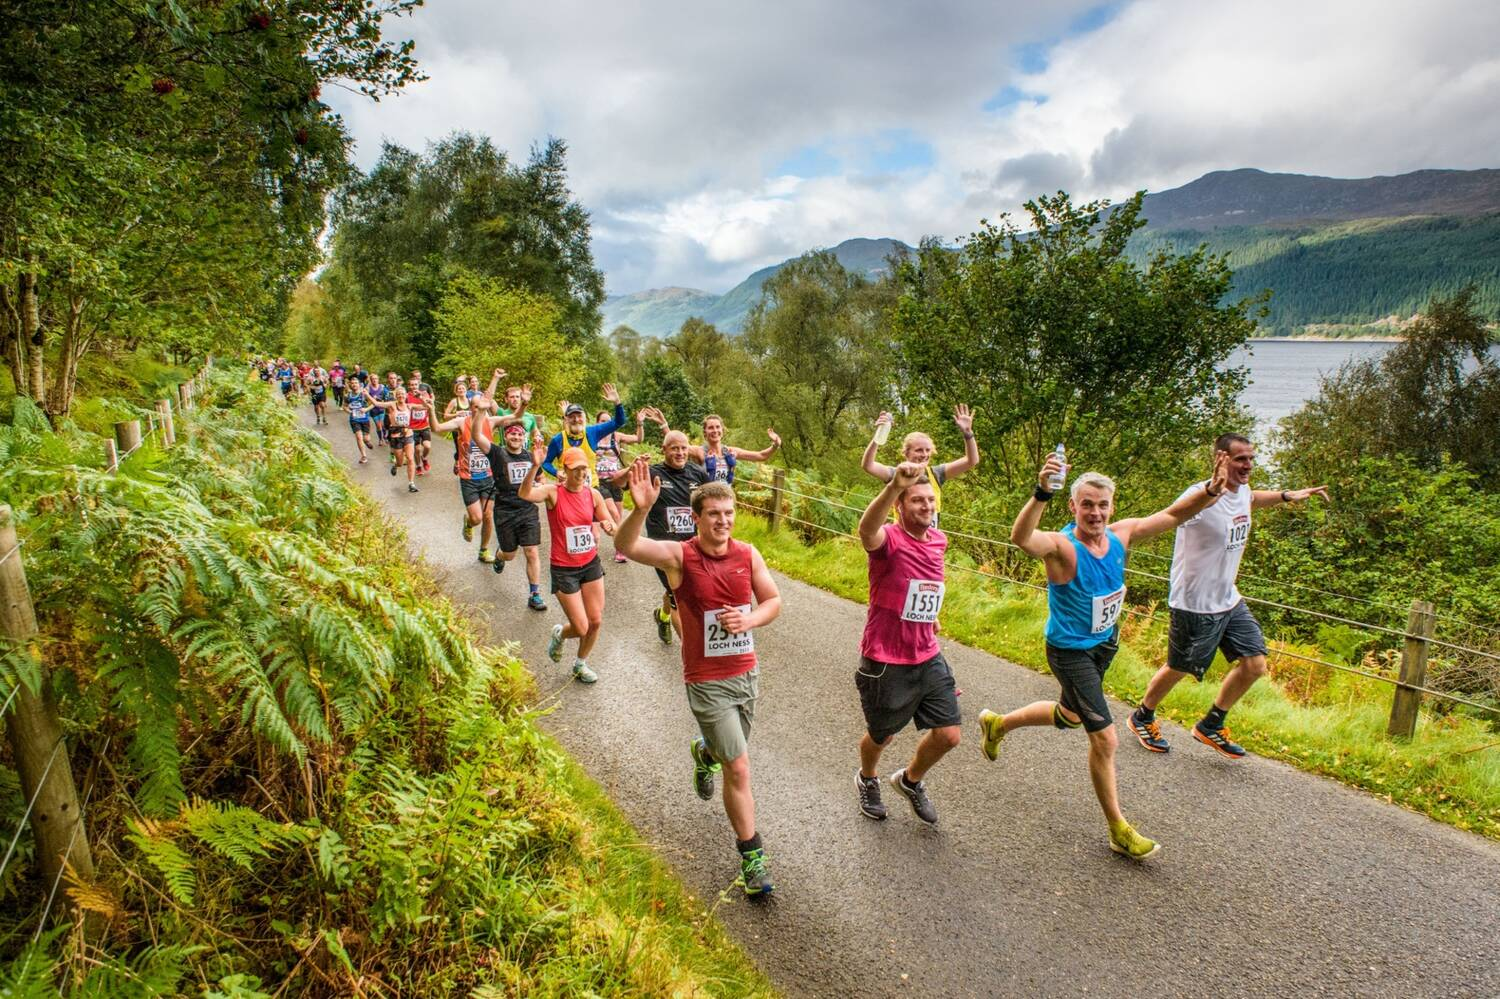 A group of marathon runners run on a tarmac path beside Loch Ness. Many look towards the camera and raise their hands in the air.